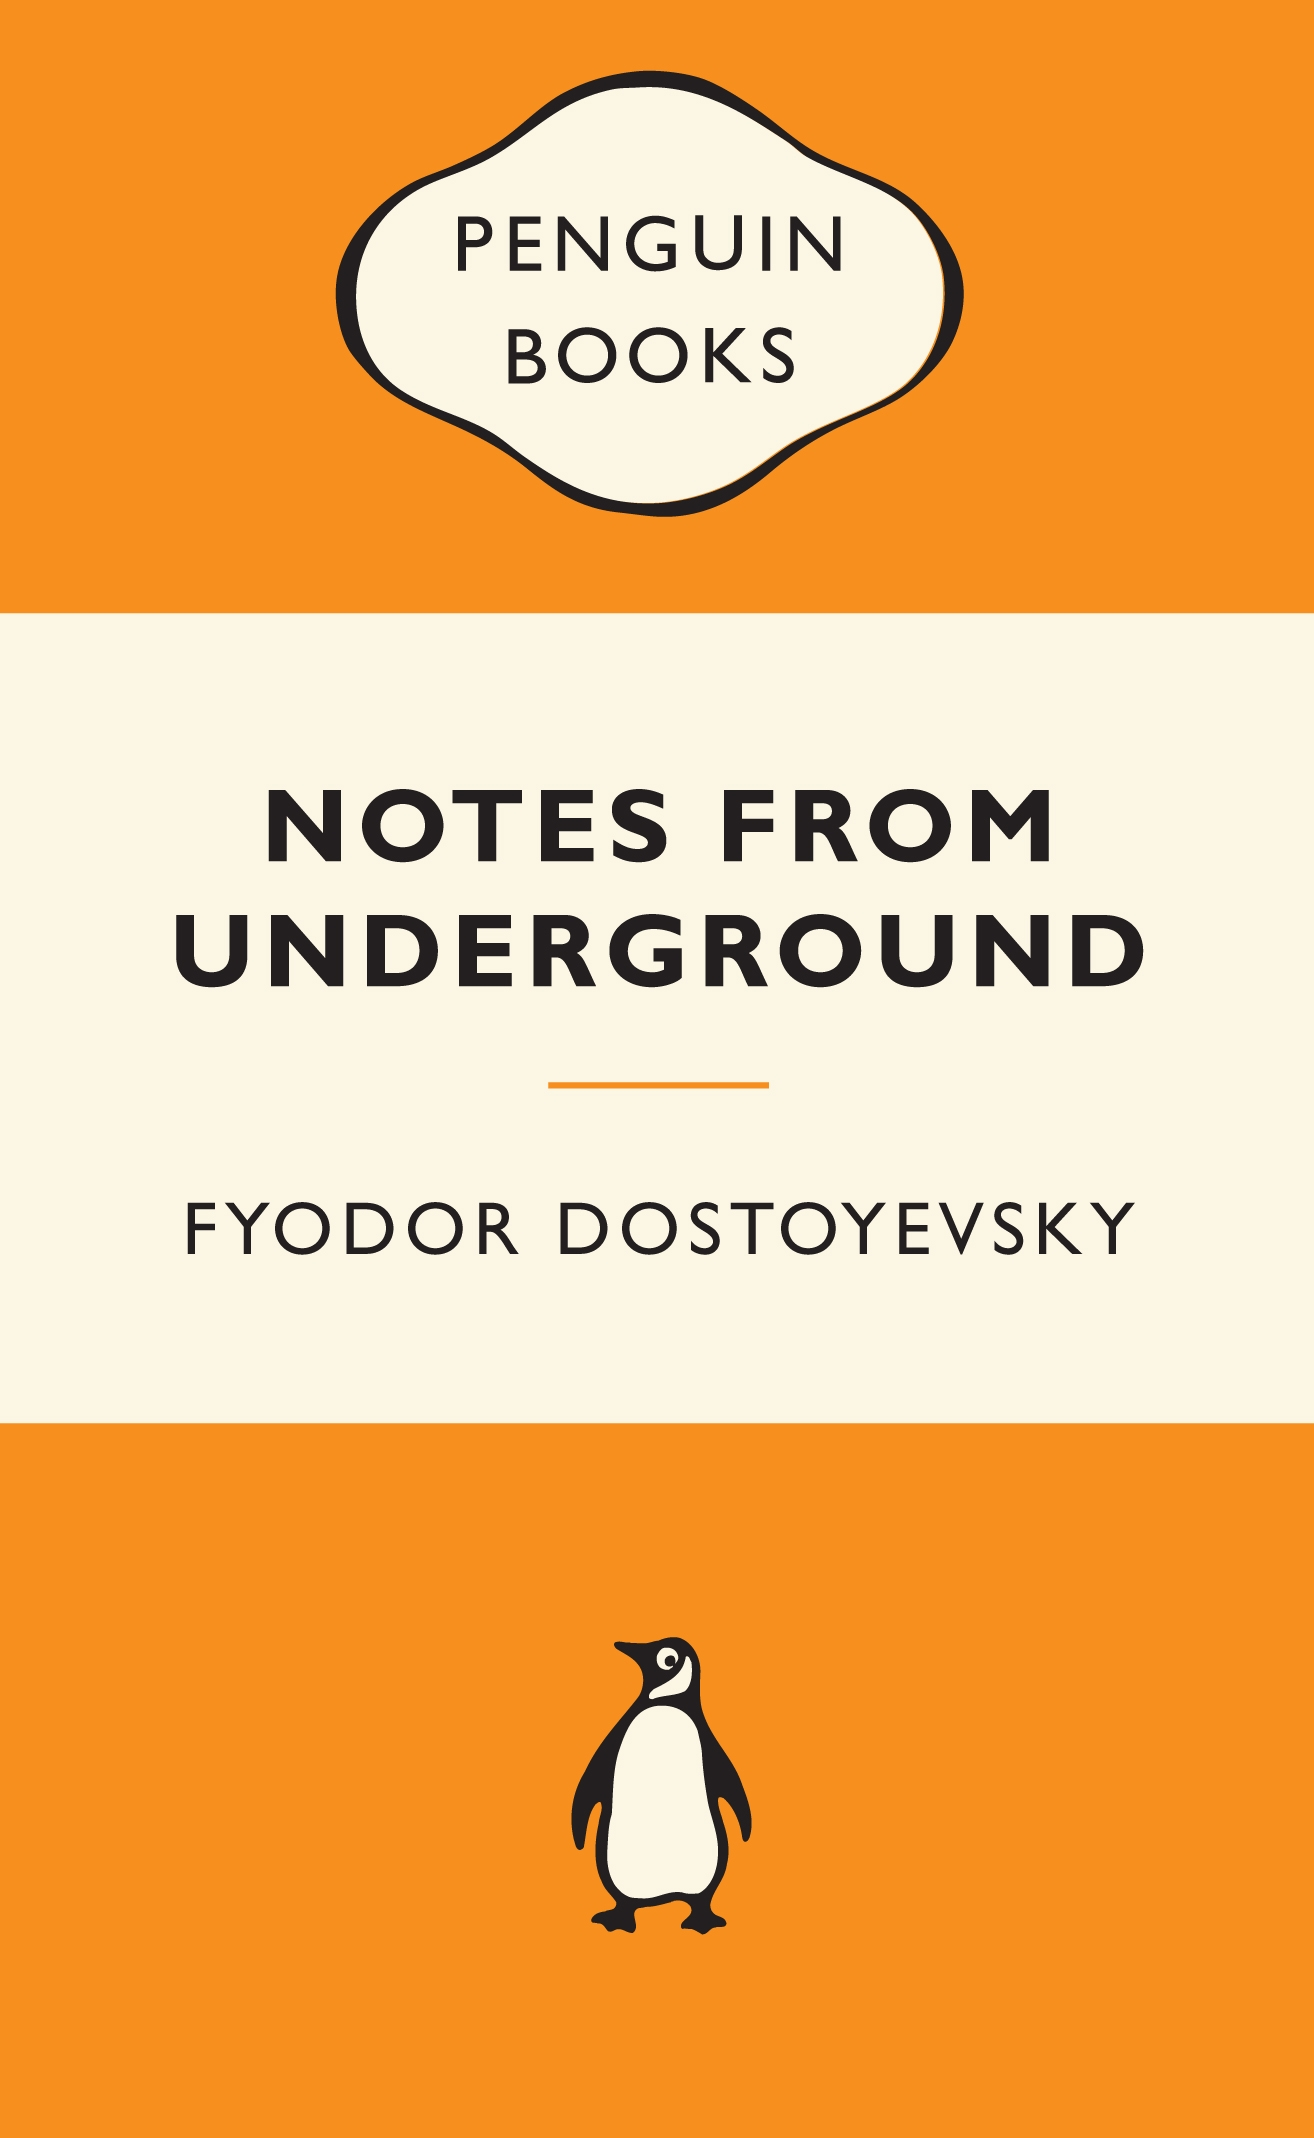 """essays on the notes from underground Thus –since notes from un- derground is a first-person narration written from the underground man's perspective– these normal men become the """"amorphous yet terrifying"""" (ibid) """"masses of 'others' pitted against the helpless intellectual few"""" (ibid), embodied by the underground man."""